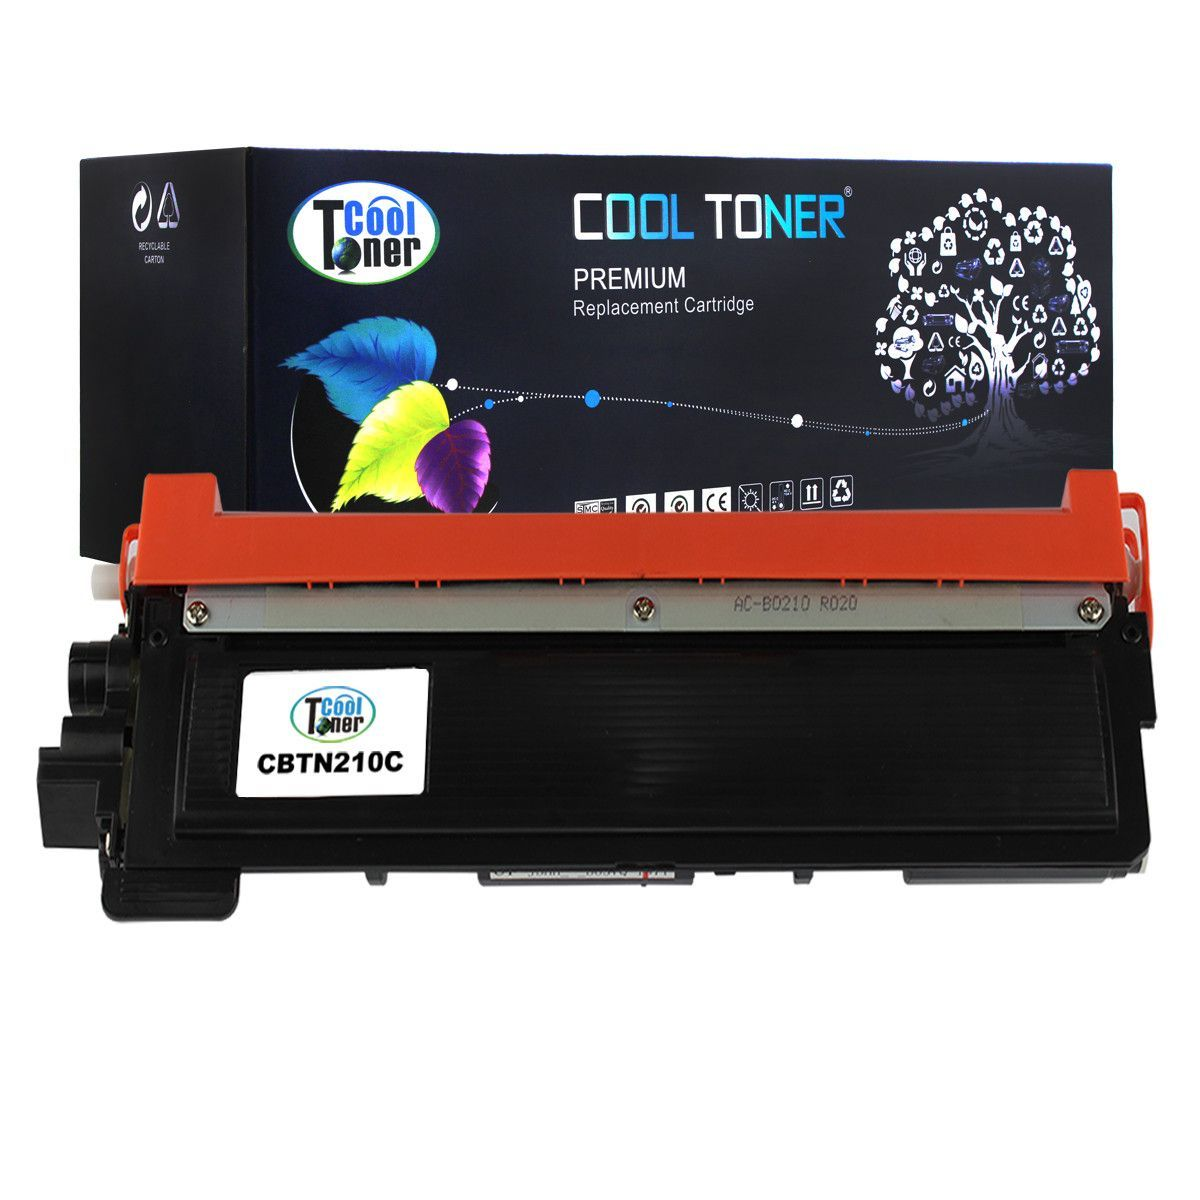 Cool Toner Compatible Toner Cartridge CT-TN210C(TN210C)for Brother HL-3040CN/3070CW